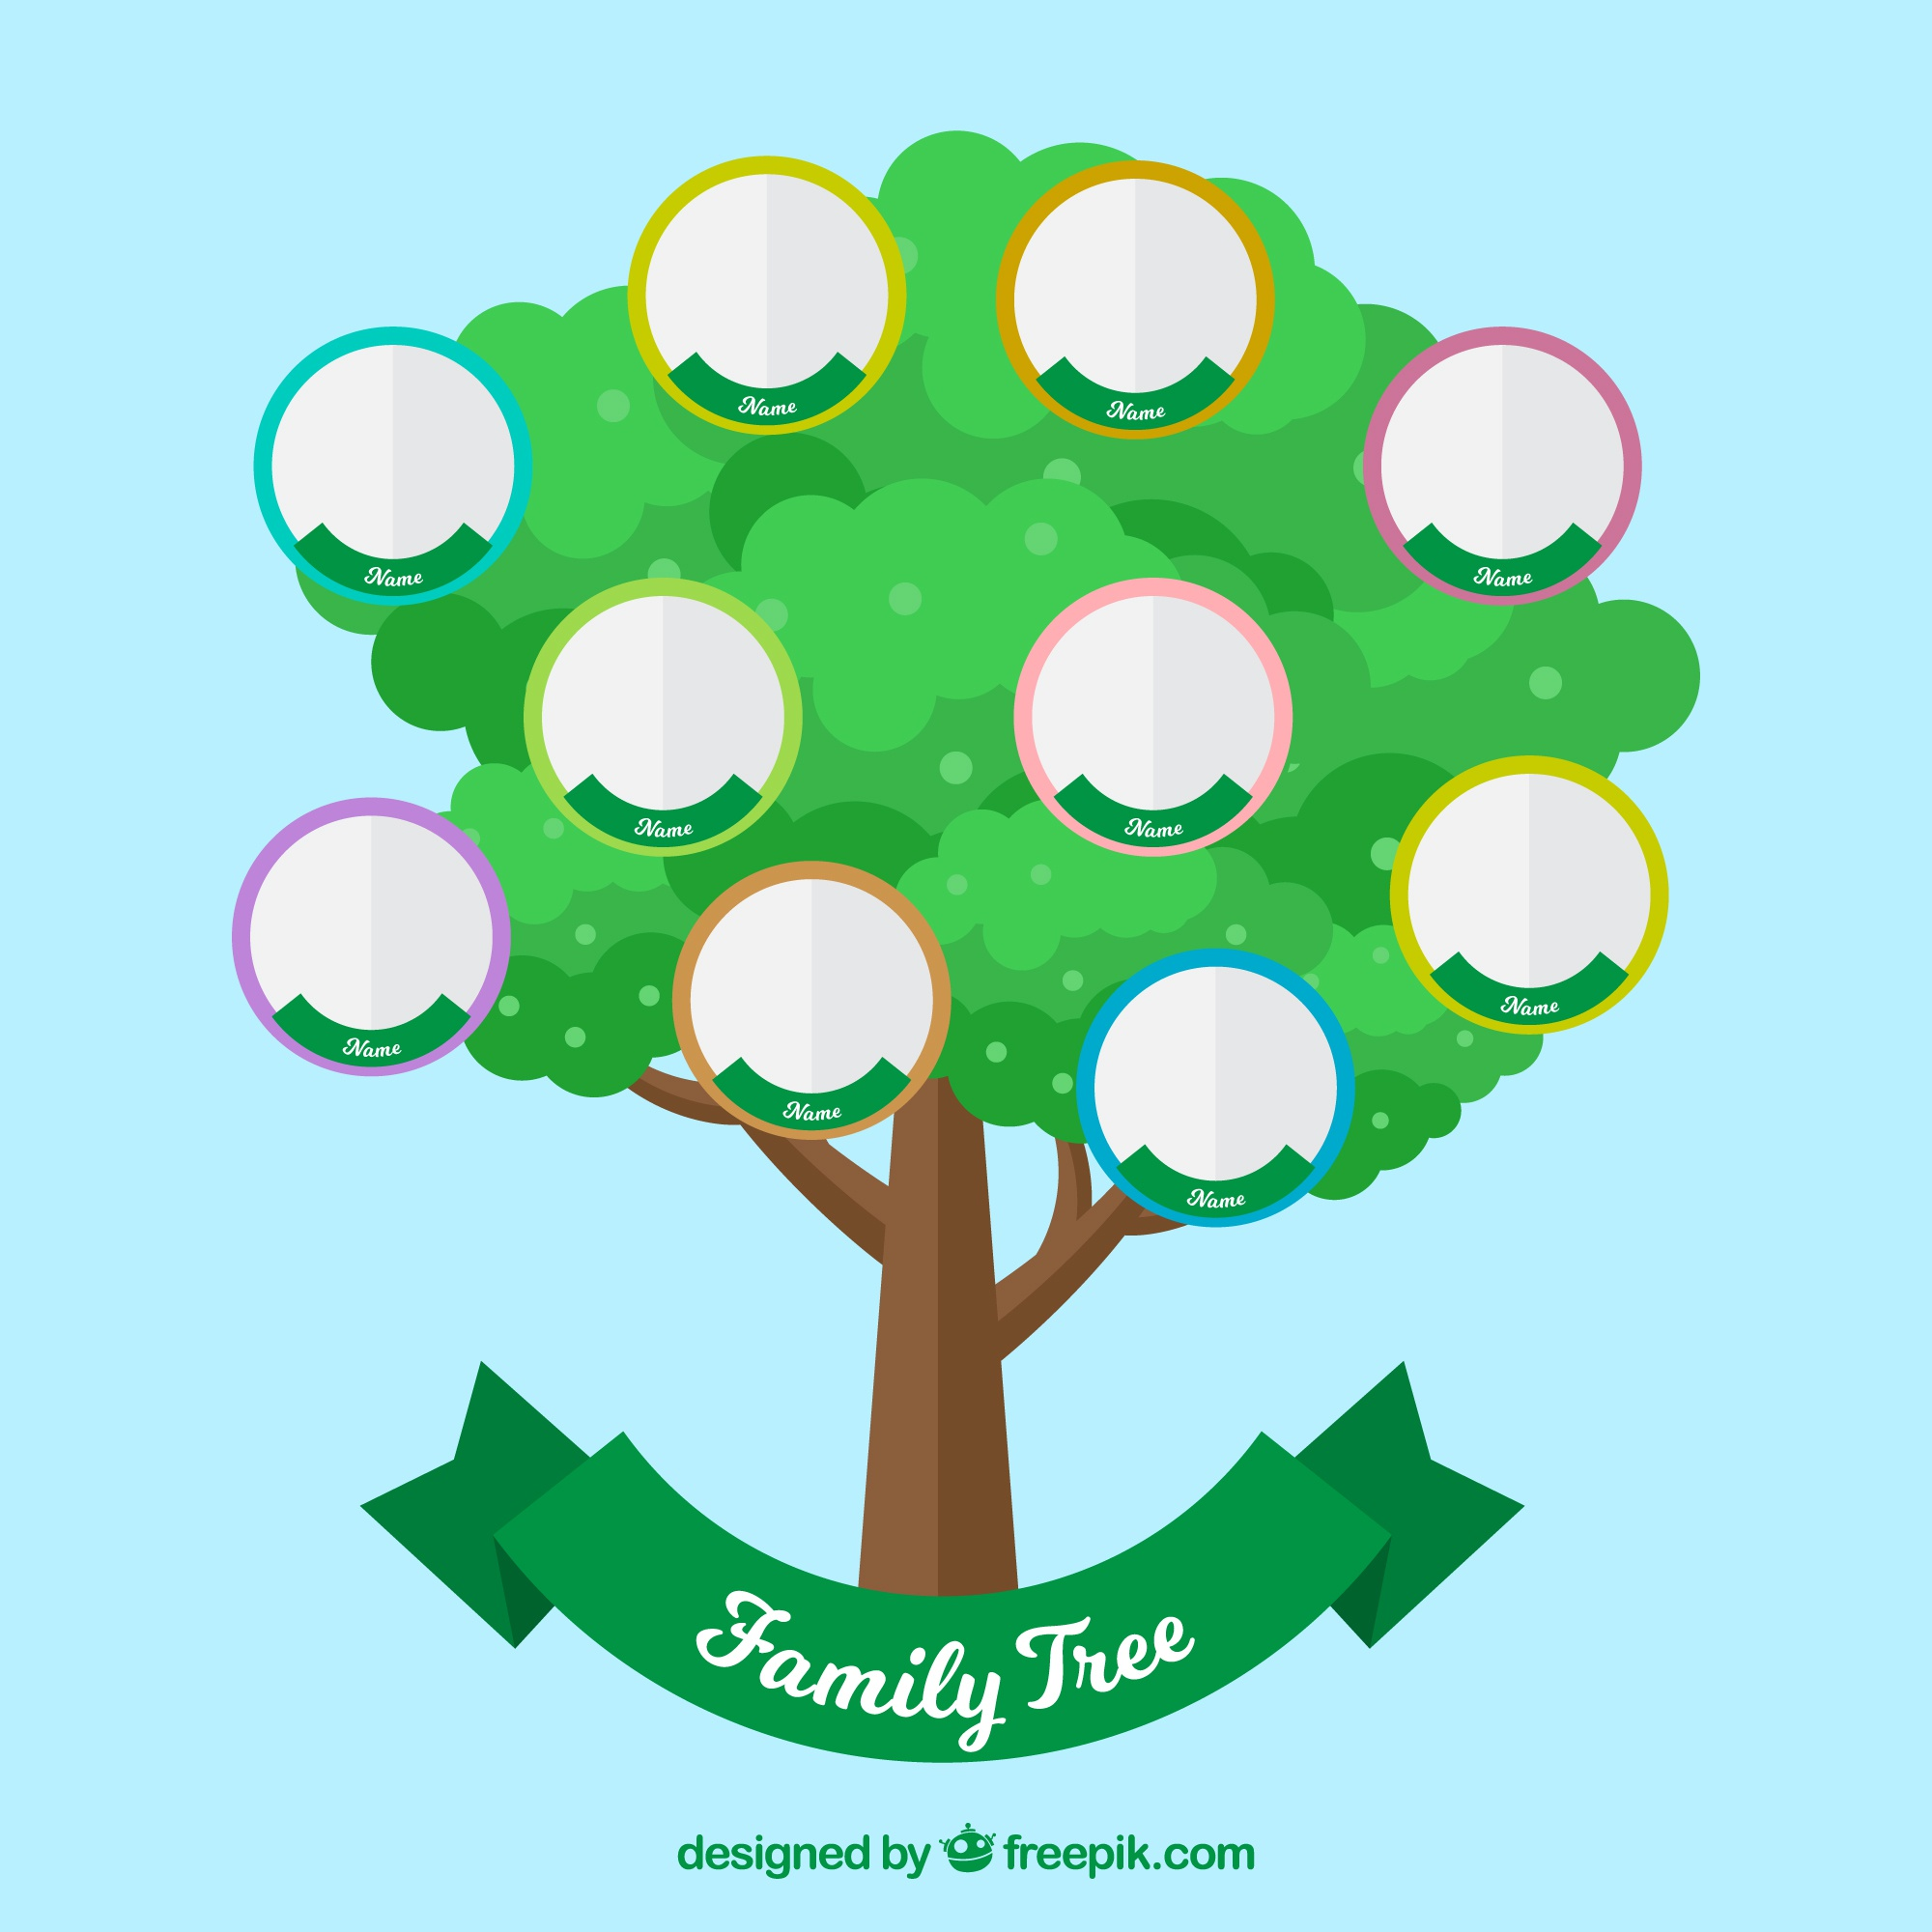 Green tree with circles for family members